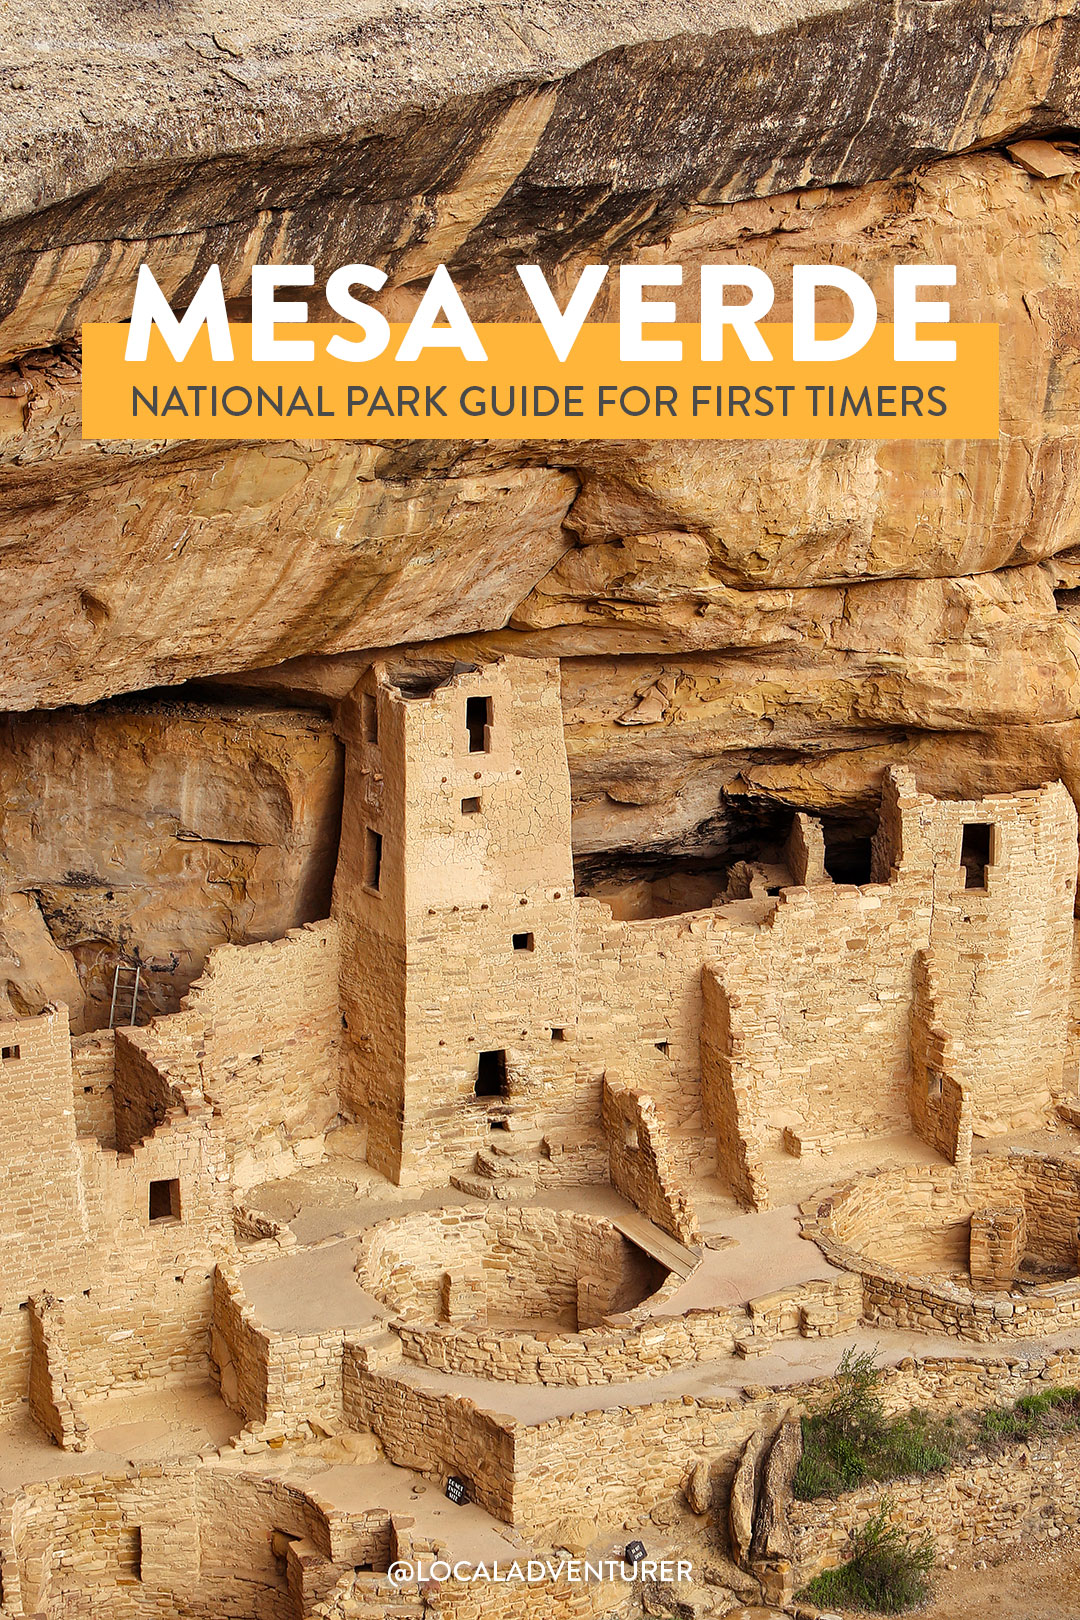 7 Things You Can't Miss in Mesa Verde National Park Colorado on shops in colorado, military in colorado, old buildings in colorado, fountains in colorado, graveyards in colorado, stones in colorado, cliffs in colorado, woods in colorado, swamps in colorado, school in colorado, craters in colorado, architecture in colorado, ocean in colorado, church in colorado, market in colorado, battle sites in colorado, rainbow in colorado, labyrinths in colorado, abandoned structures in colorado, empire in colorado,